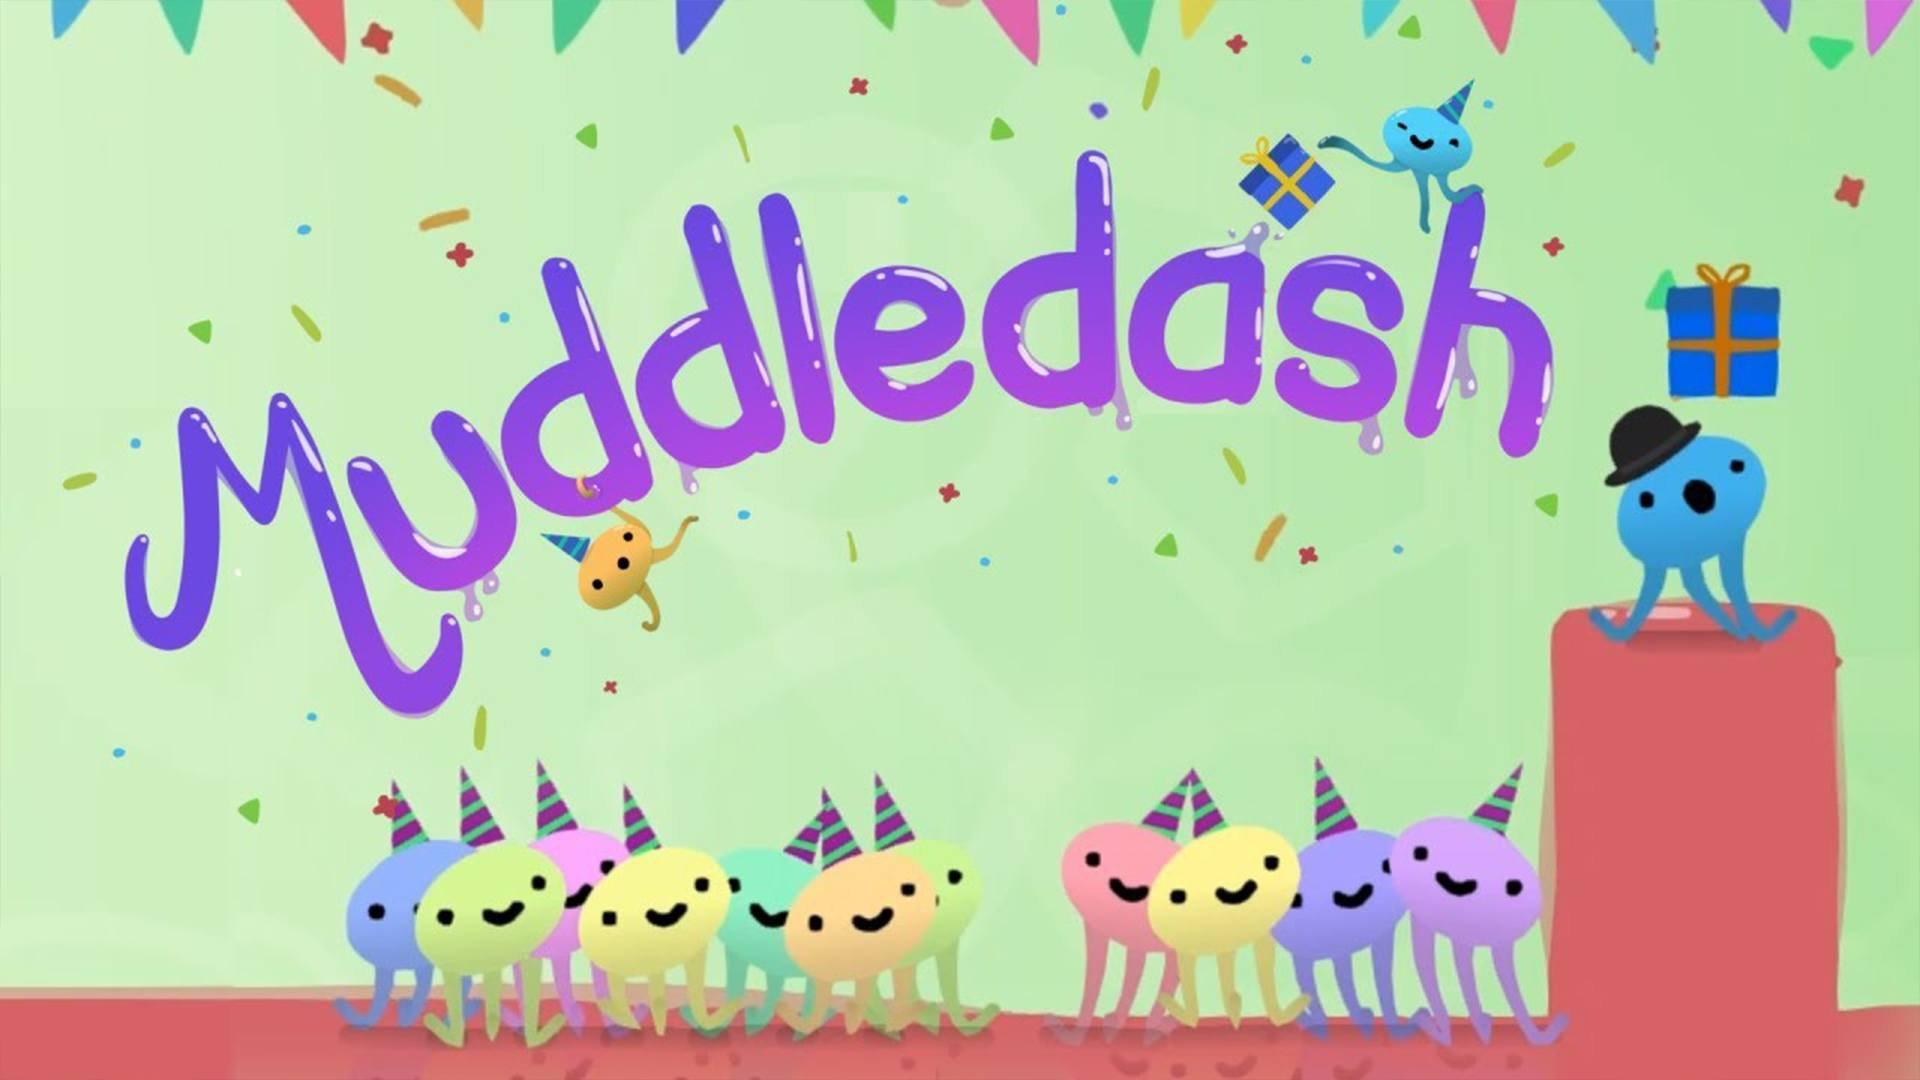 Muddledash Video